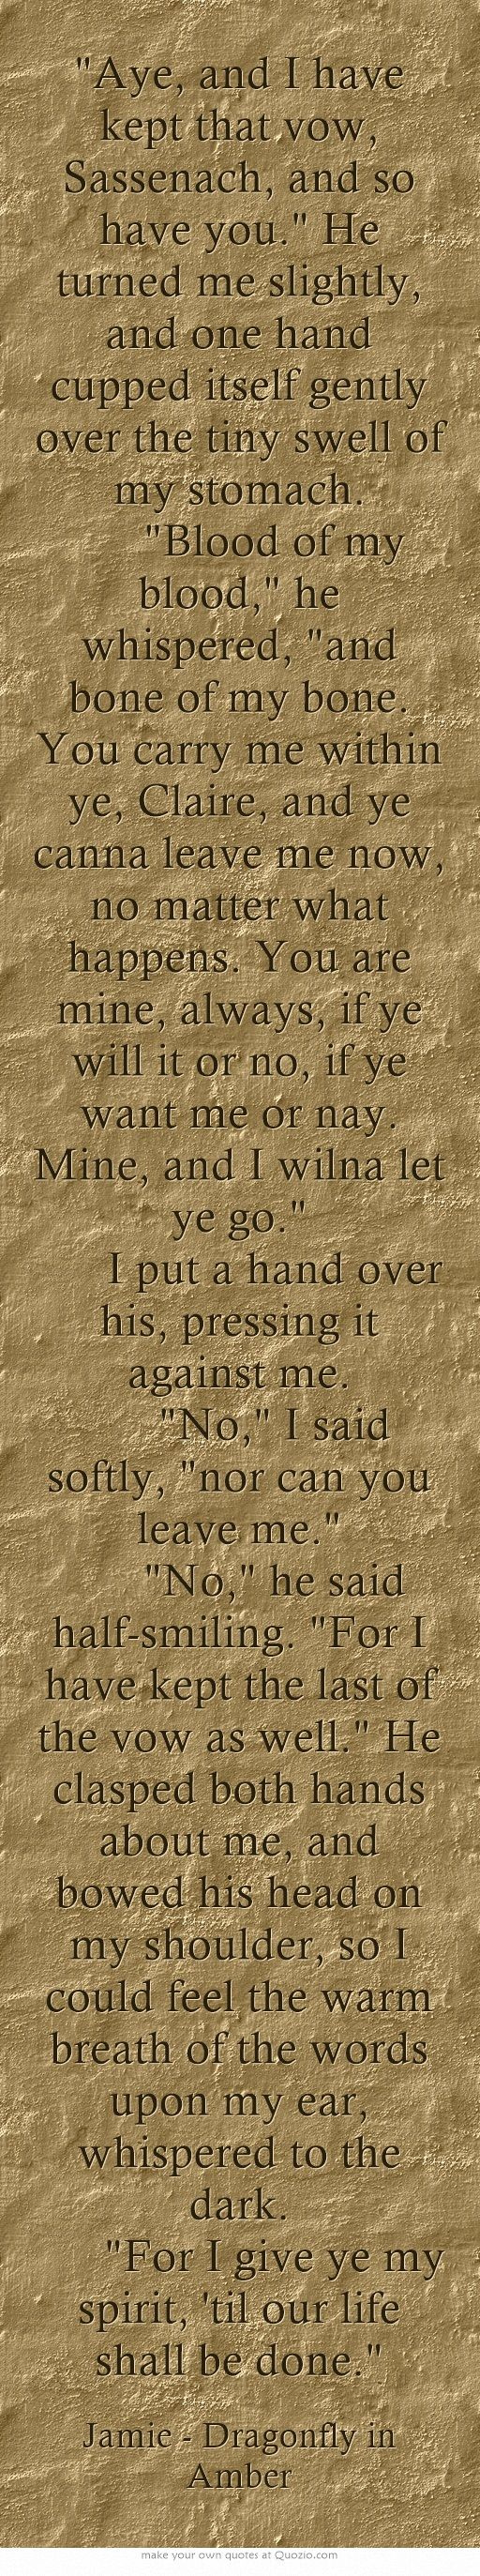 Aye, and I have kept that vow, Sassenach, and so have you. He turned me slightly, and one hand cupped itself gently over the tiny swell of my stomach. Blood of my blood, he whispered, and bone of my bone. You carry me within ye, Claire, and ye canna leave me now, no matter what happens. You are mine, always, if ye will it or no, if ye want me or nay. Mine, and I wilna let ye go. I put a hand over his, pressing it against me. No, I said softly, nor...